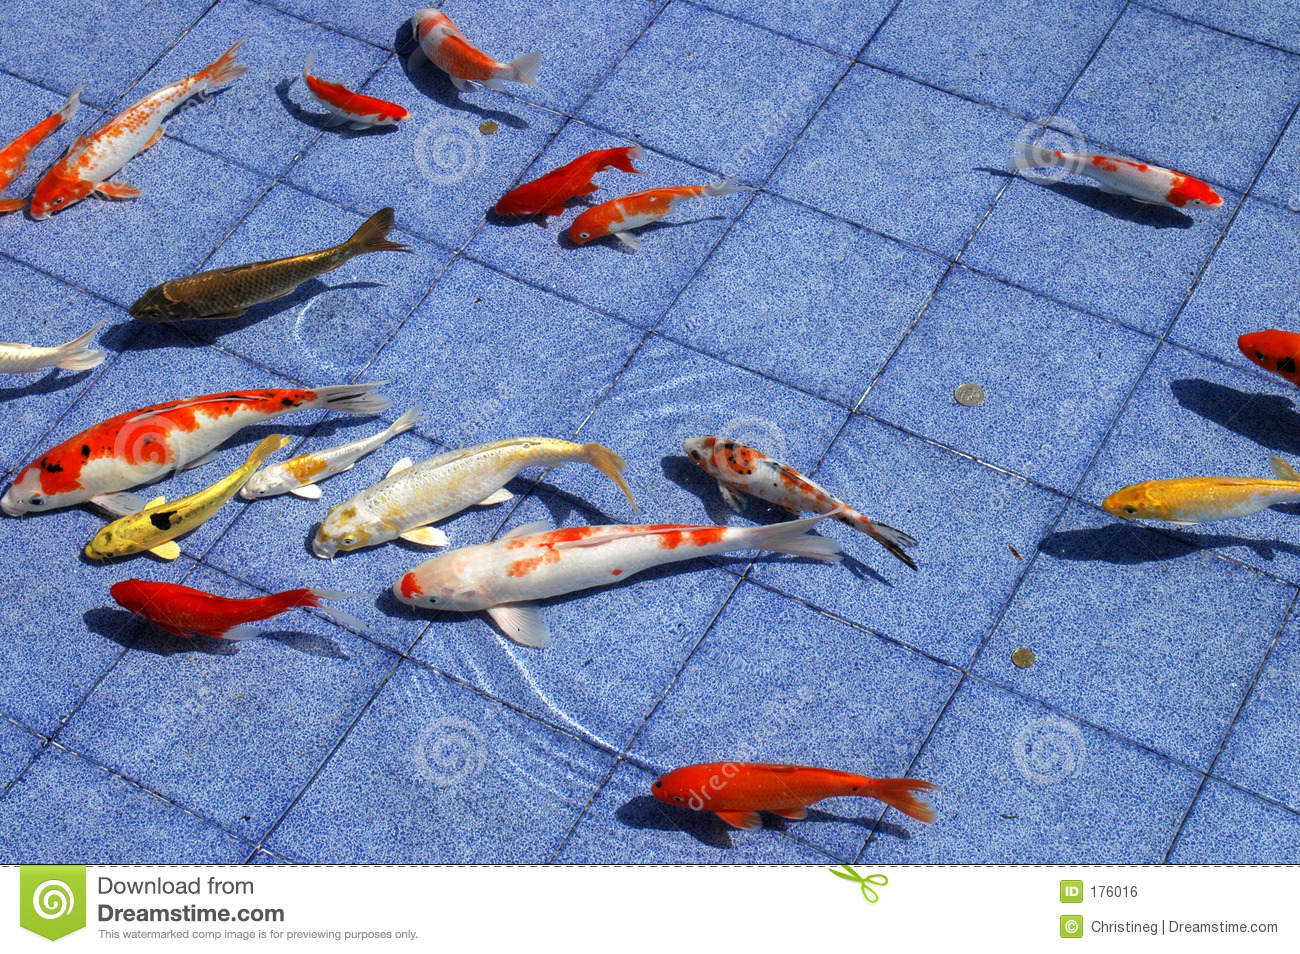 Koi fish in a blue pool royalty free stock image image for Koi fish in pool